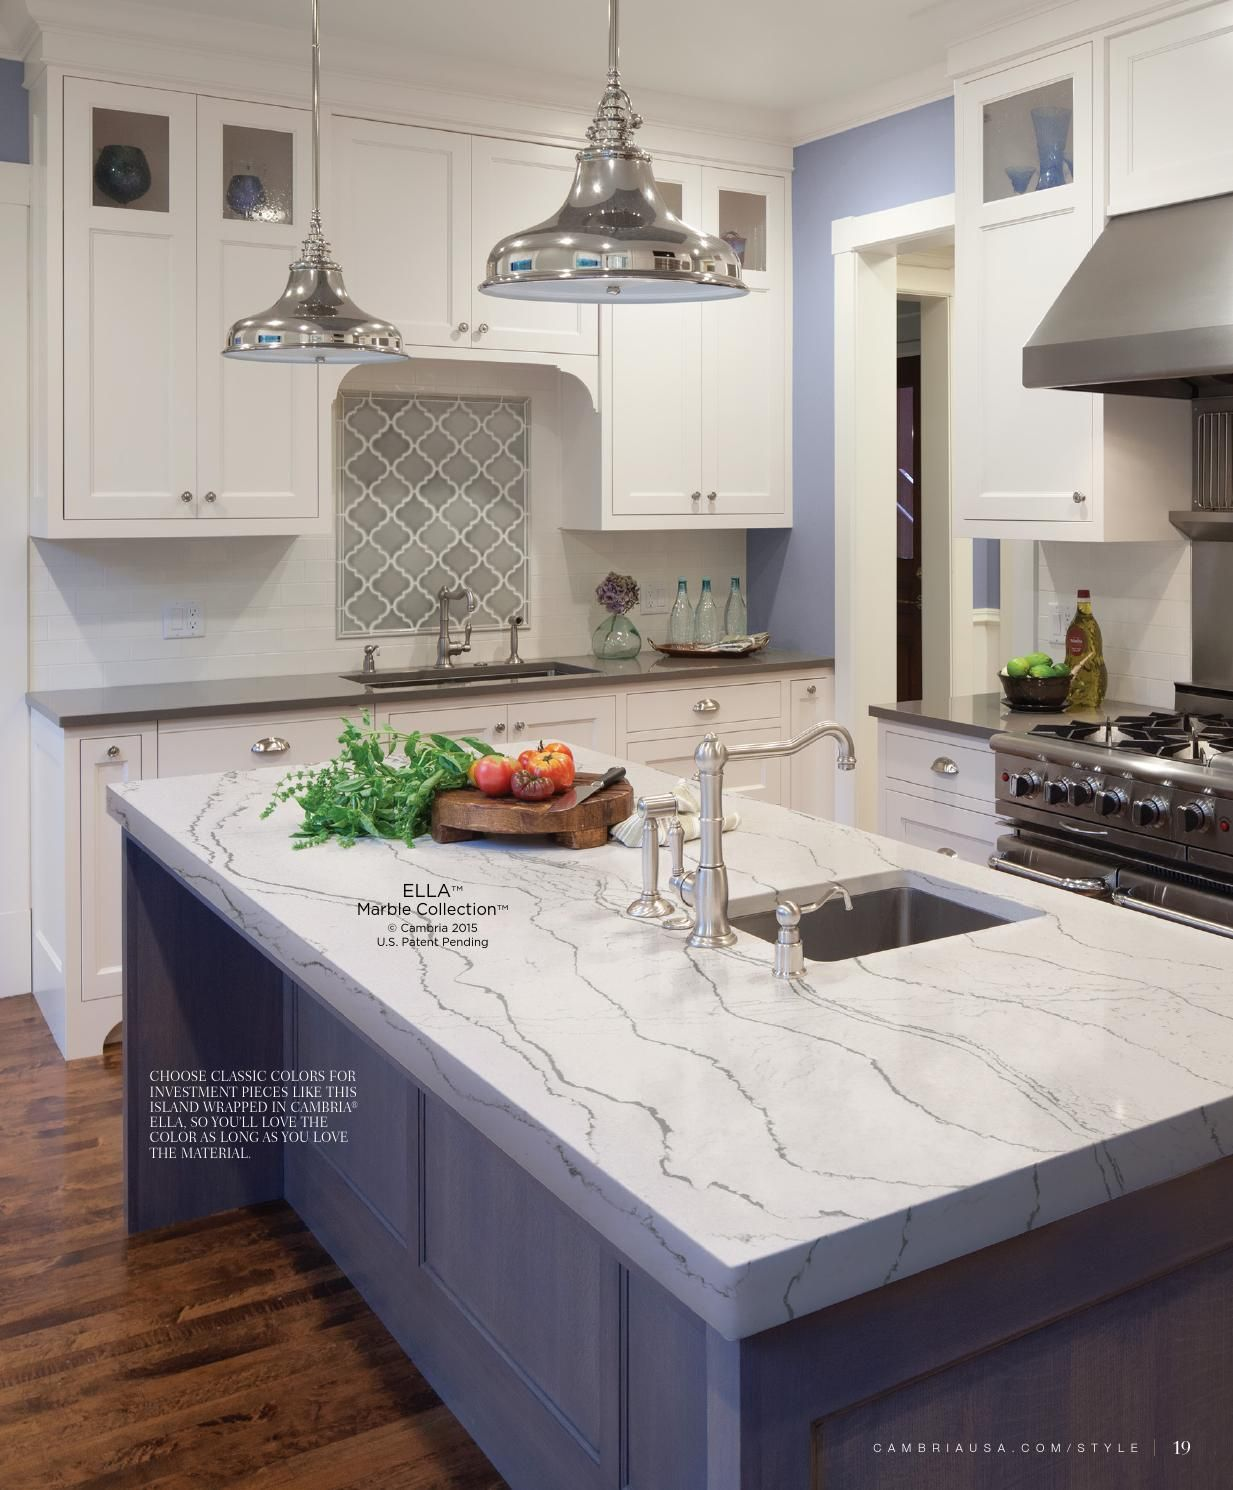 Kitchen Countertops And Backsplash Photos: Cambria Style - Summer 2015